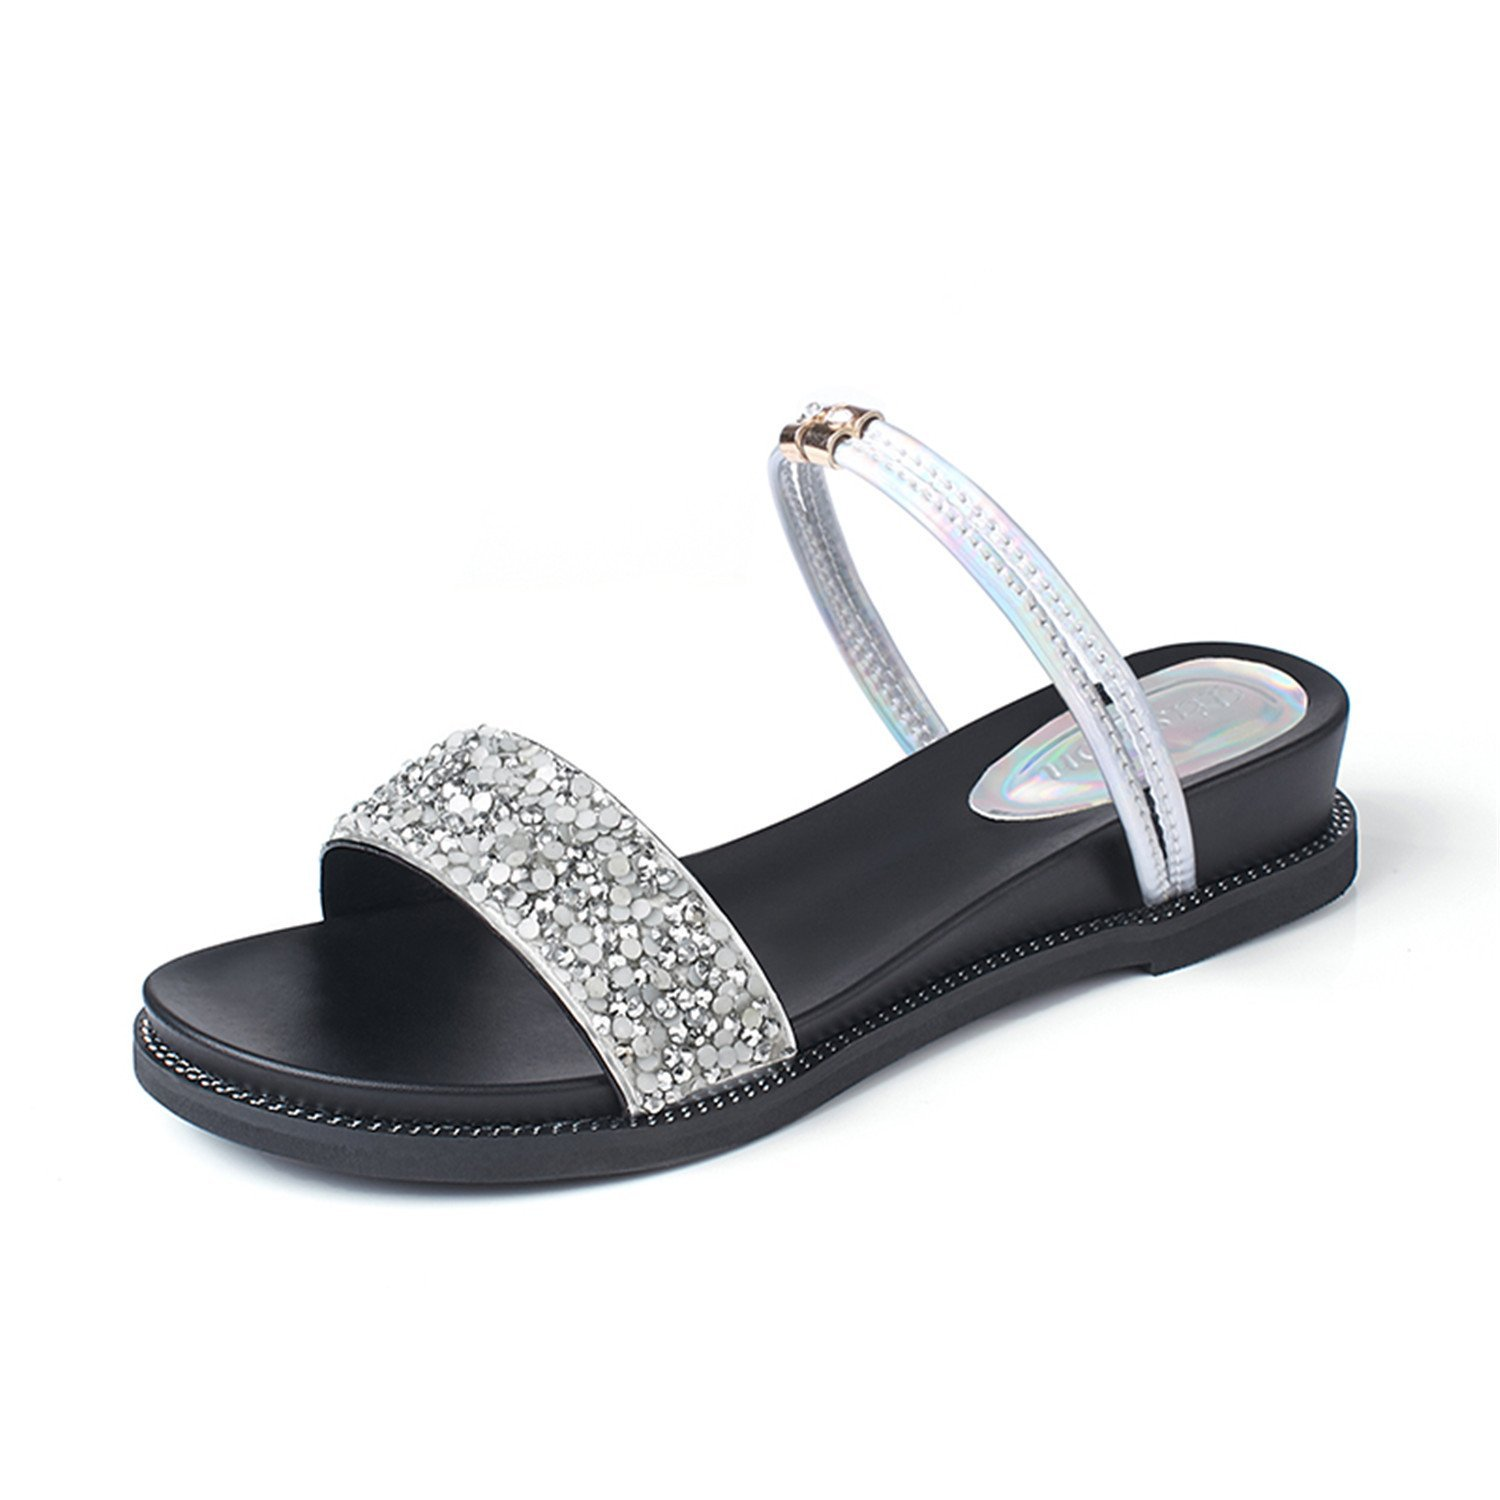 1bbbf896e3dea Cheap Ladies Flat Sandals, find Ladies Flat Sandals deals on line at ...